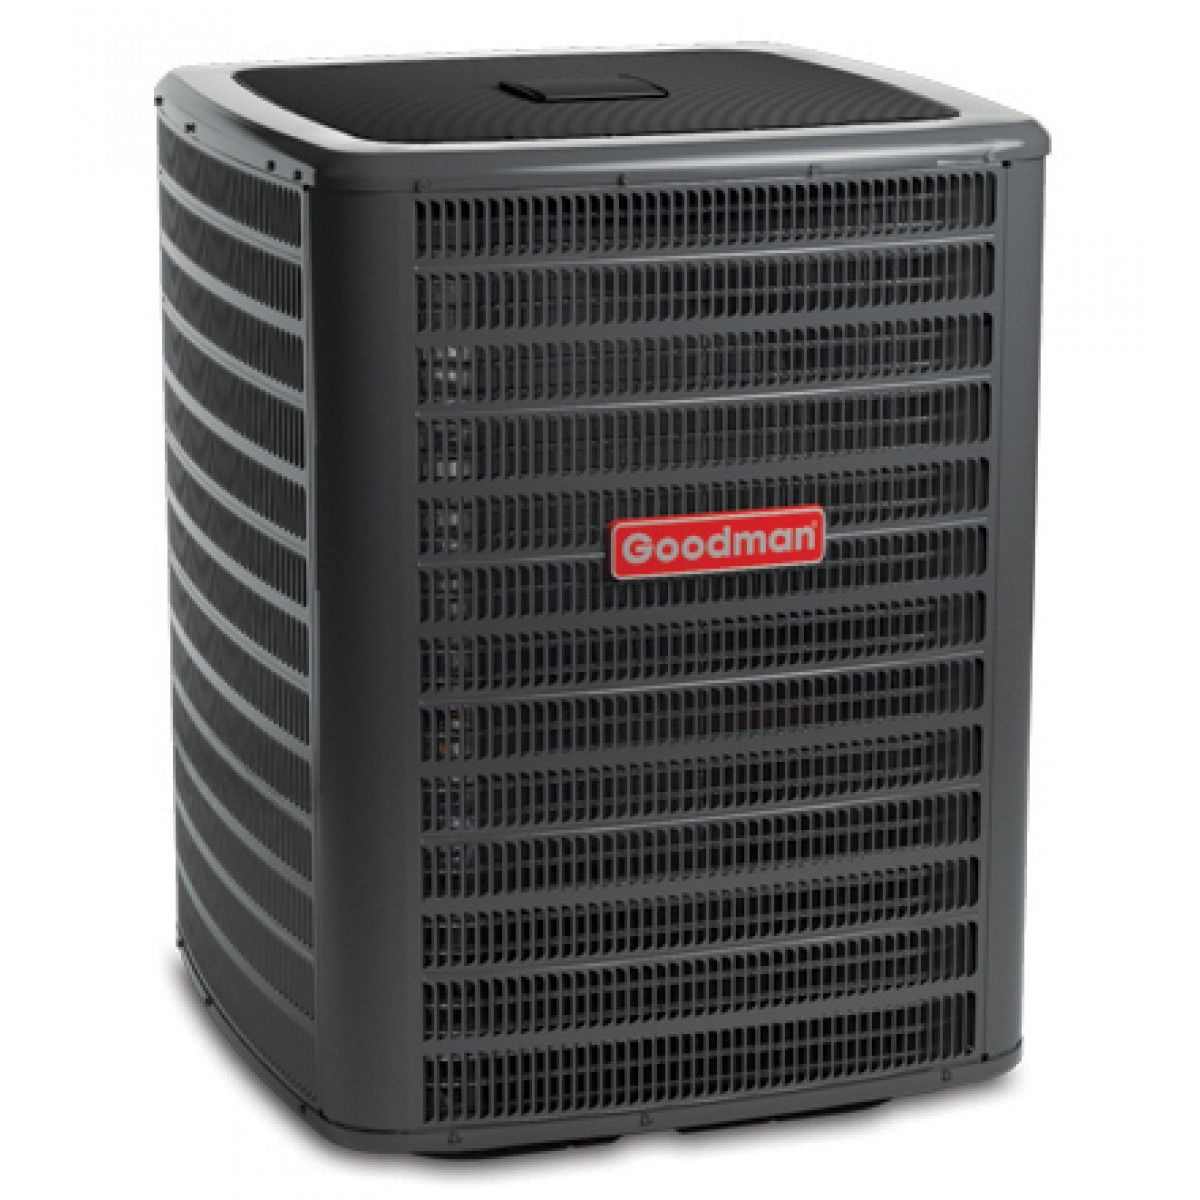 #A82325 Goodman 3.0 Ton 16 SEER Single Stage Air Conditioning  Best 12083 Goodman Air Conditioning Systems photos with 1200x1200 px on helpvideos.info - Air Conditioners, Air Coolers and more